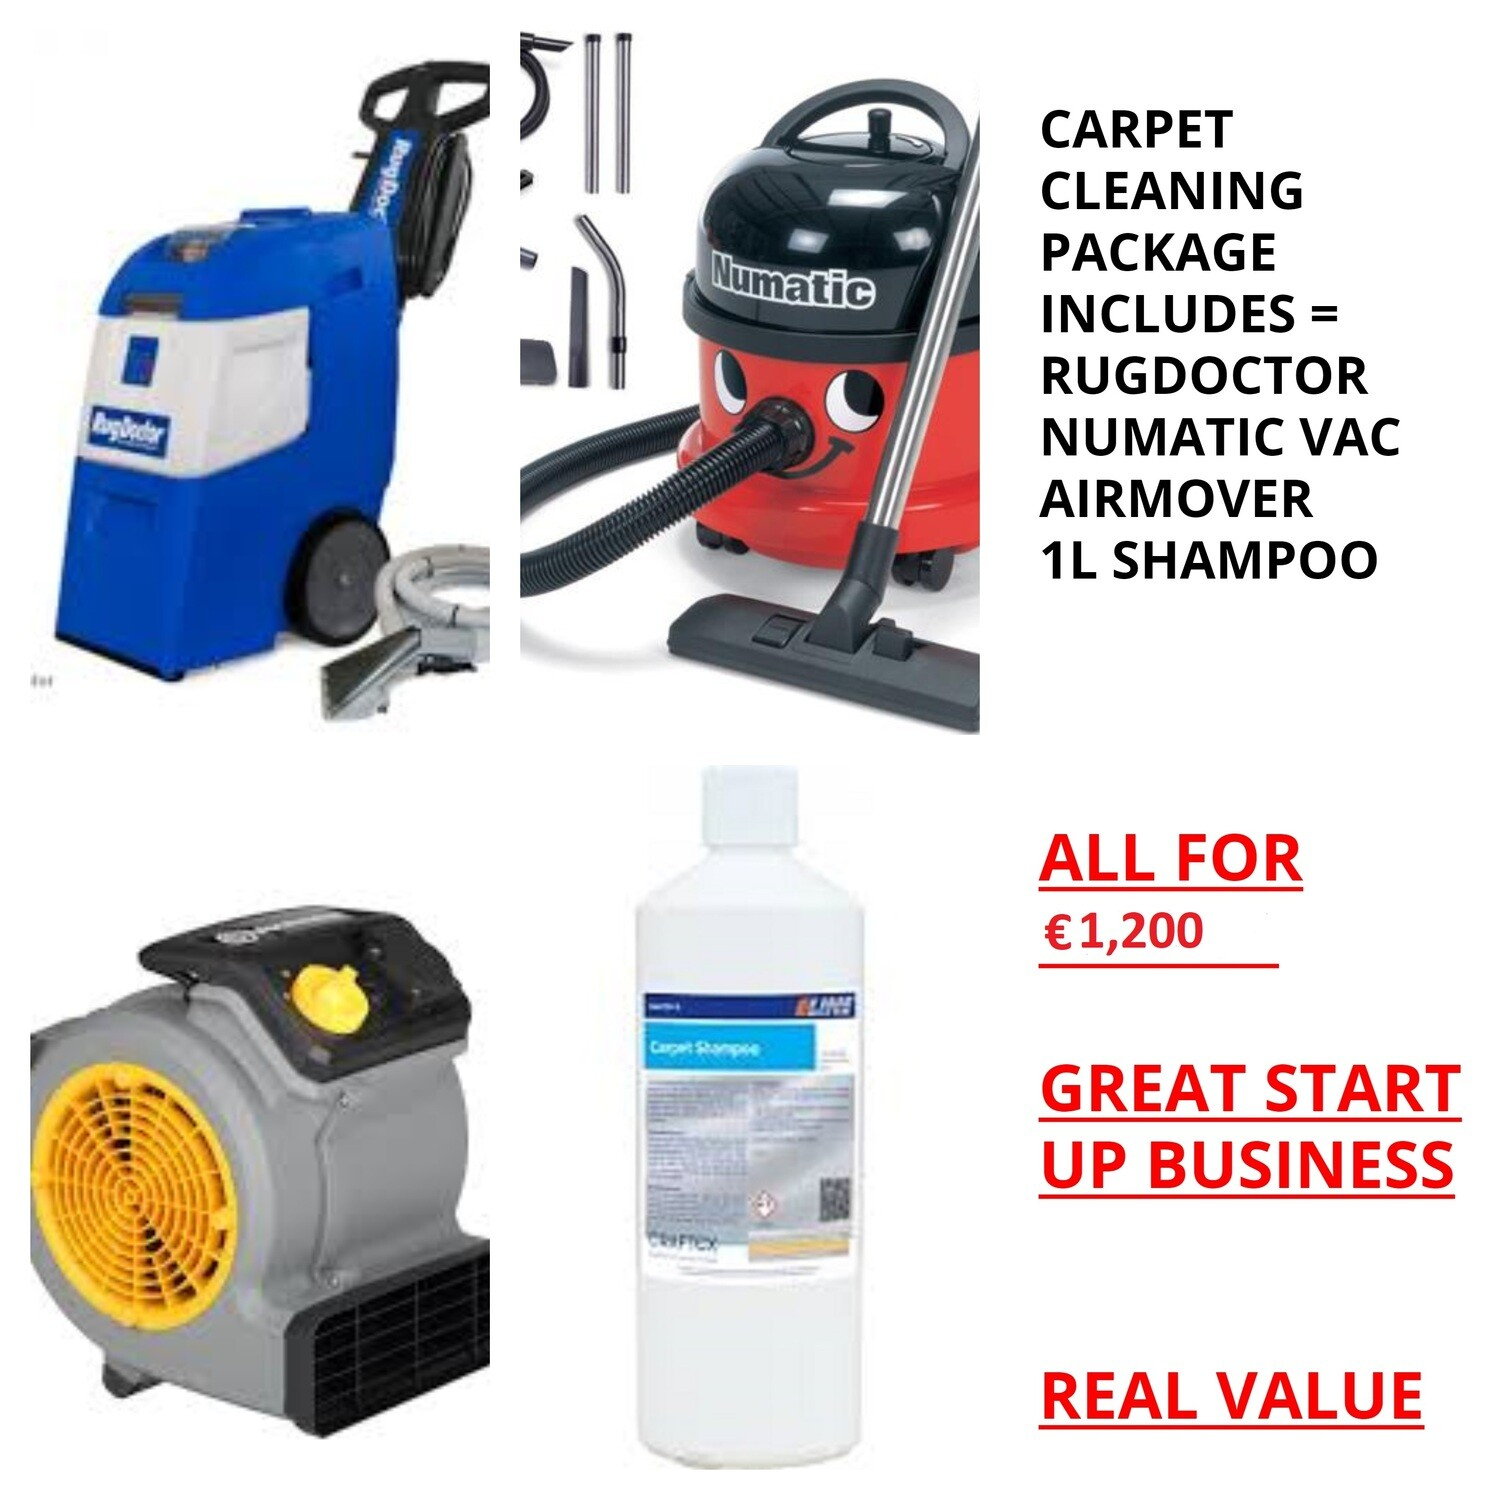 CARPET CLEANING PACKAGE ONLY €1200